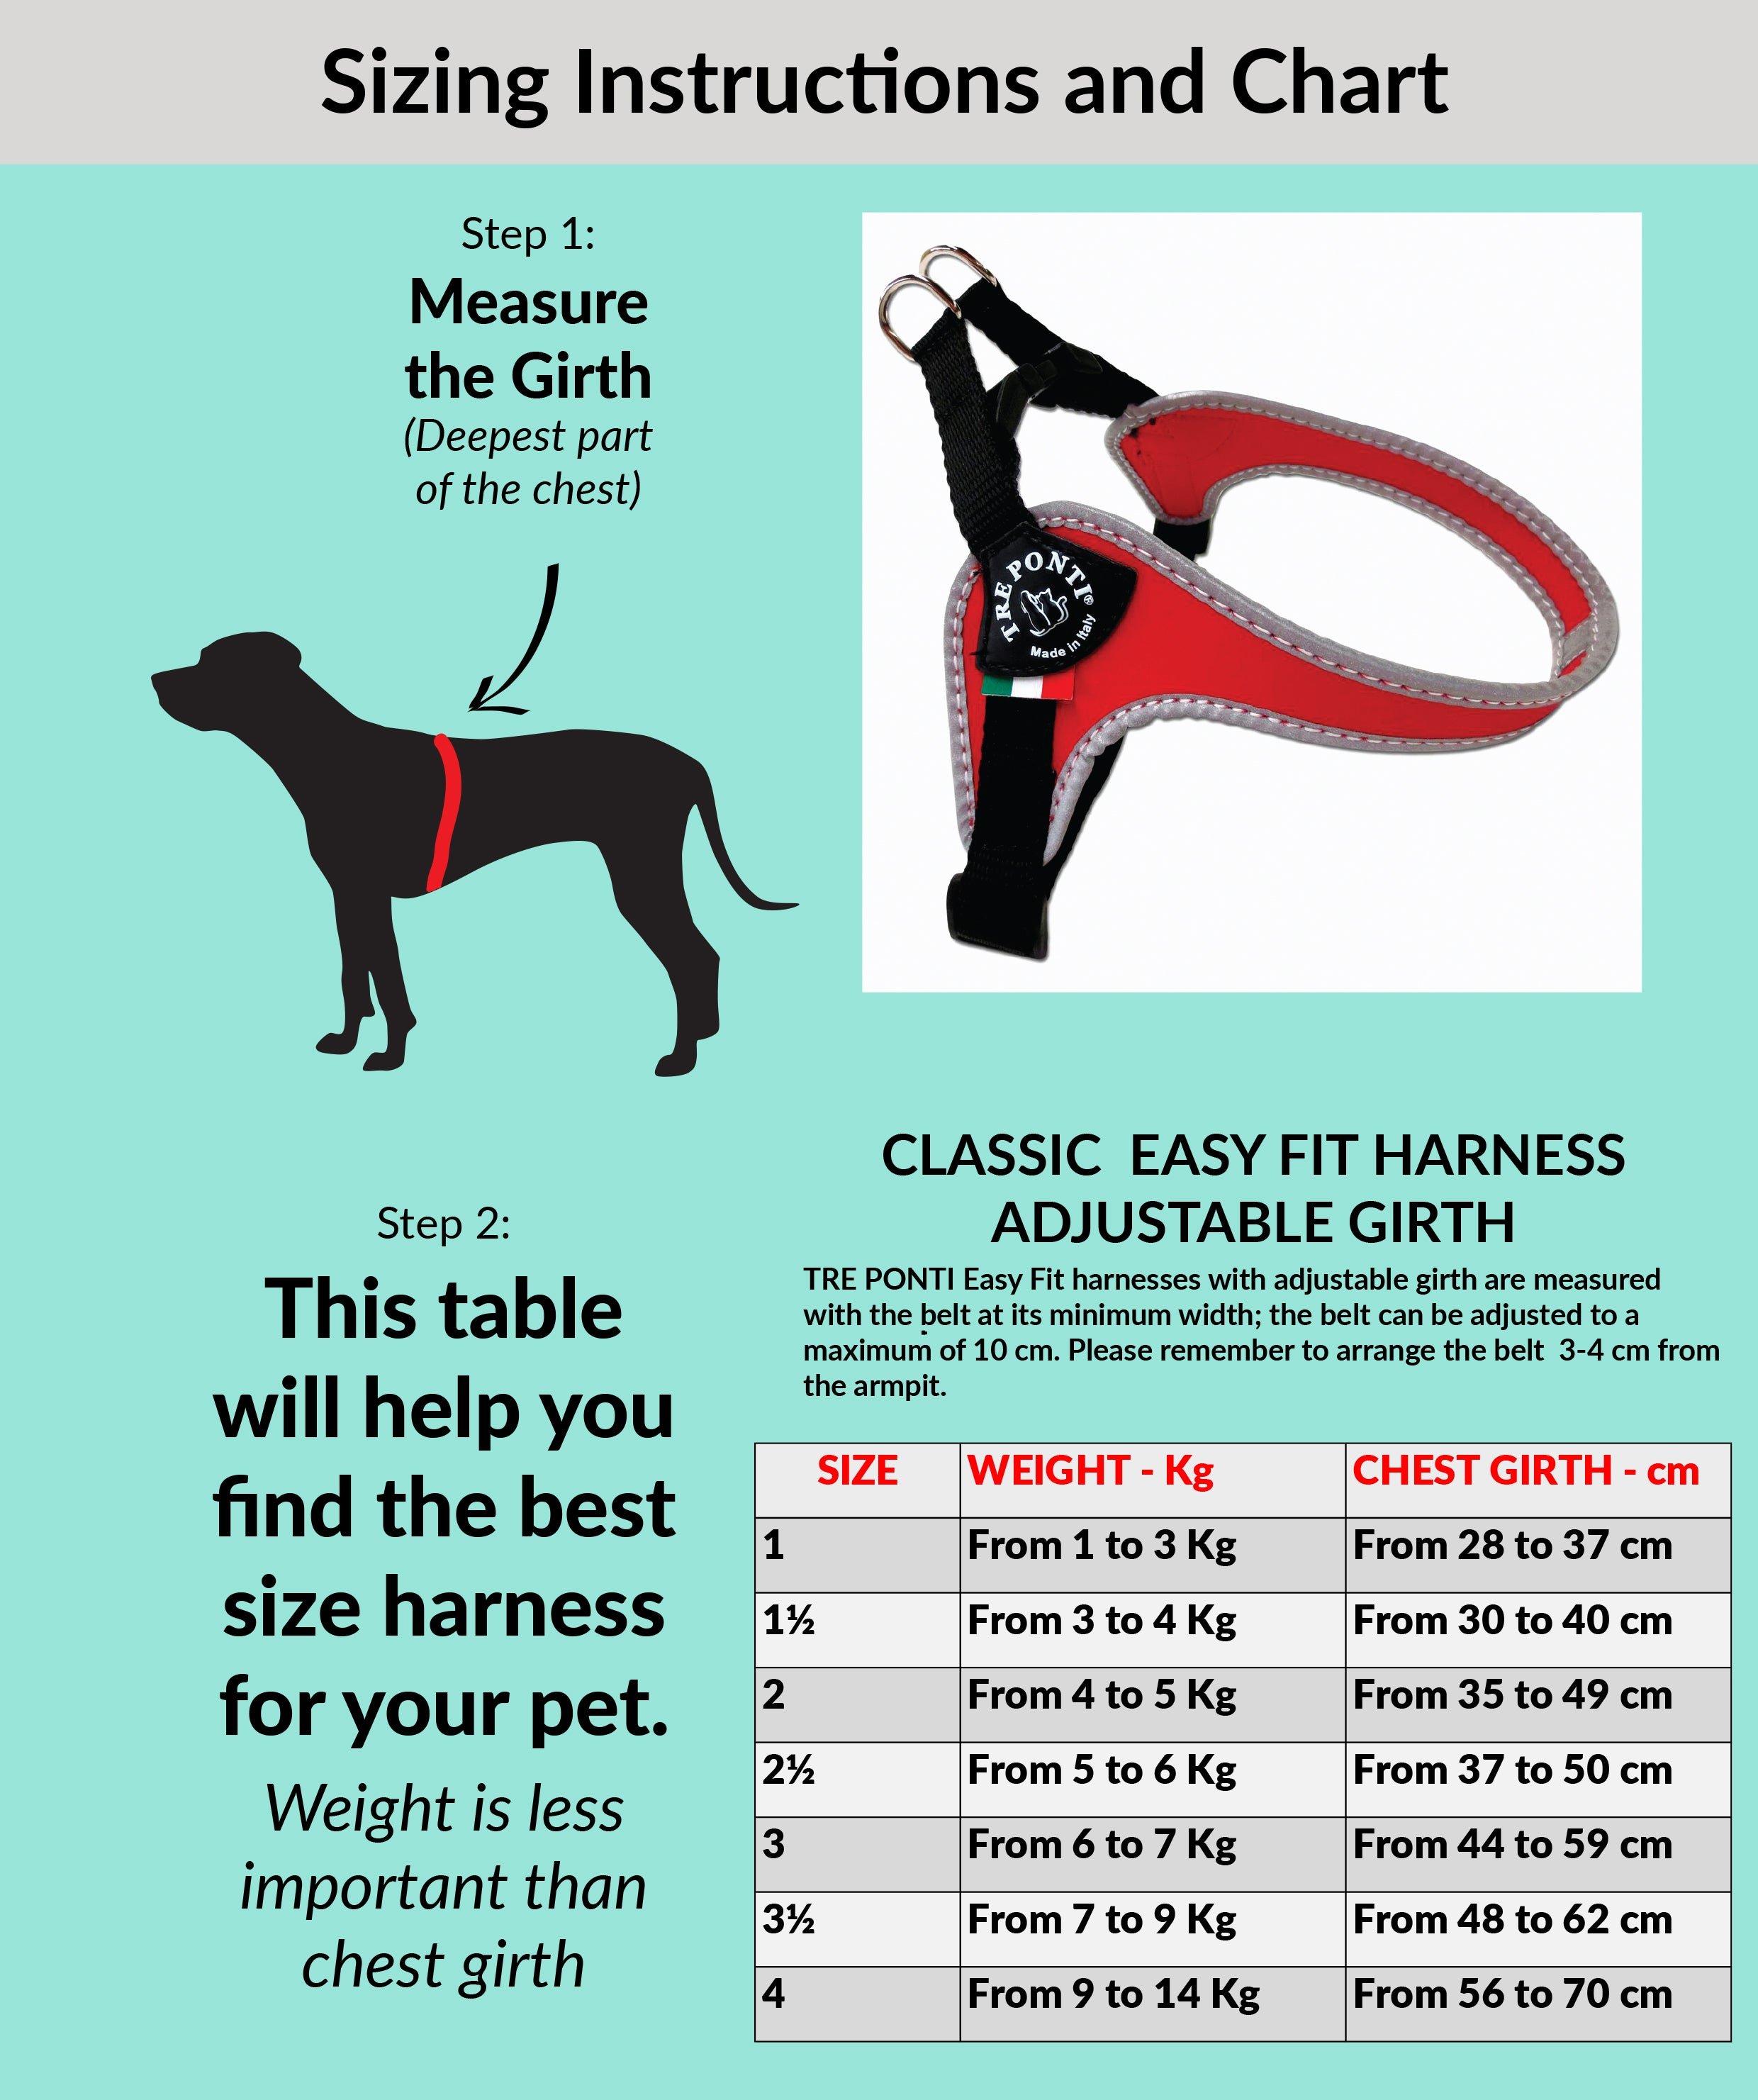 Easy Fit Classic Harness with Adjustable Girth